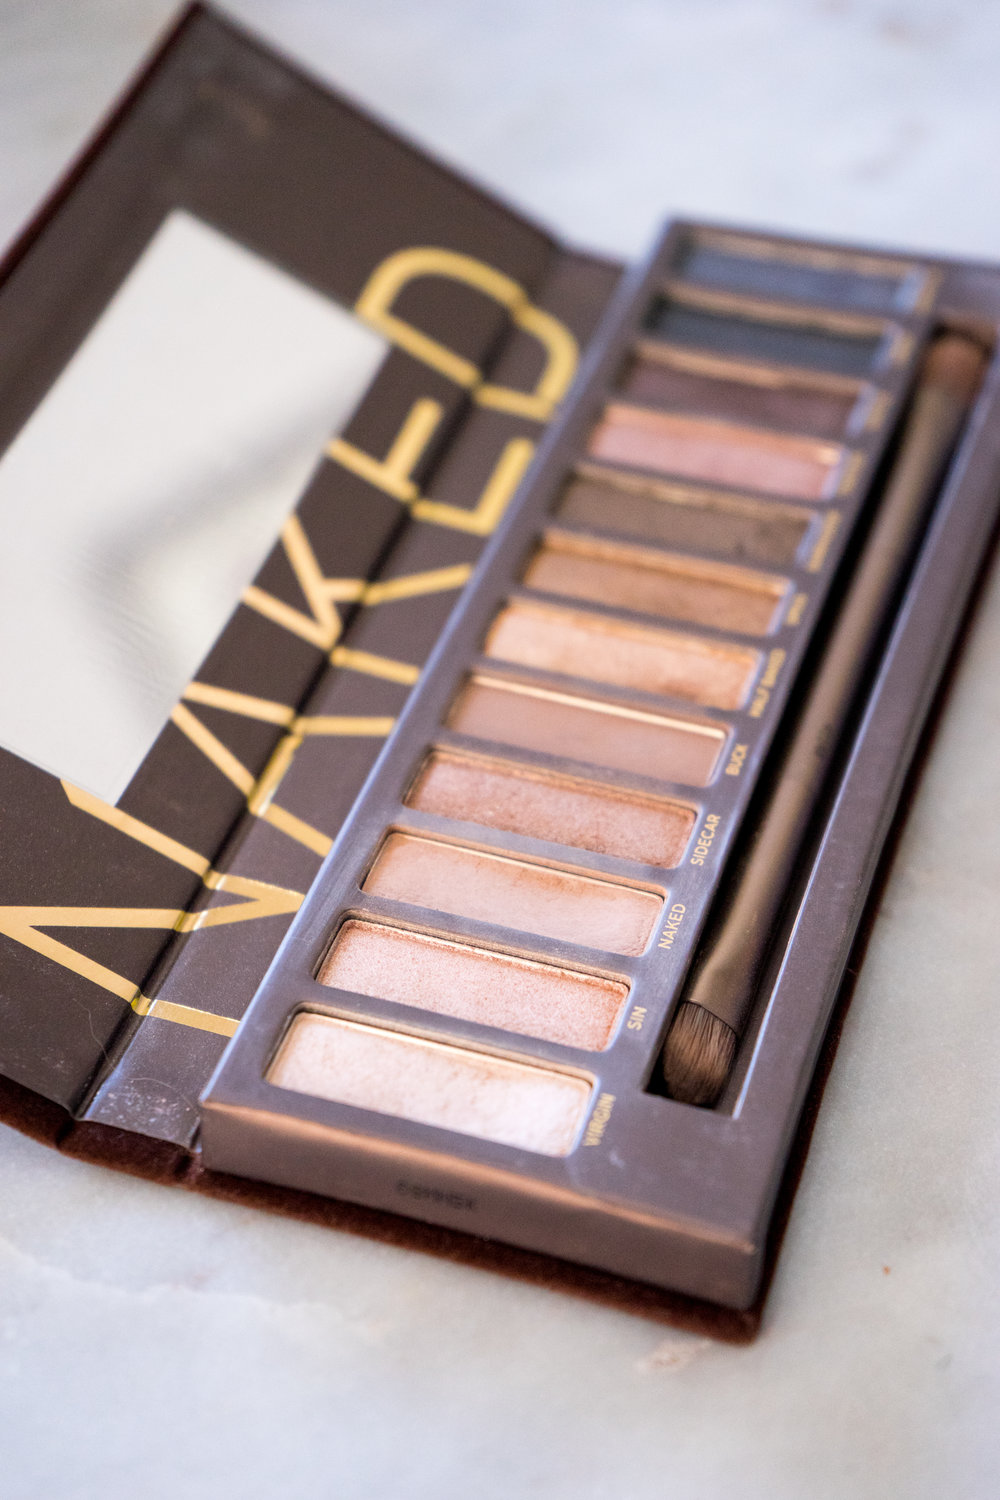 Maggie a la Mode - Urban Decay Naked Palette